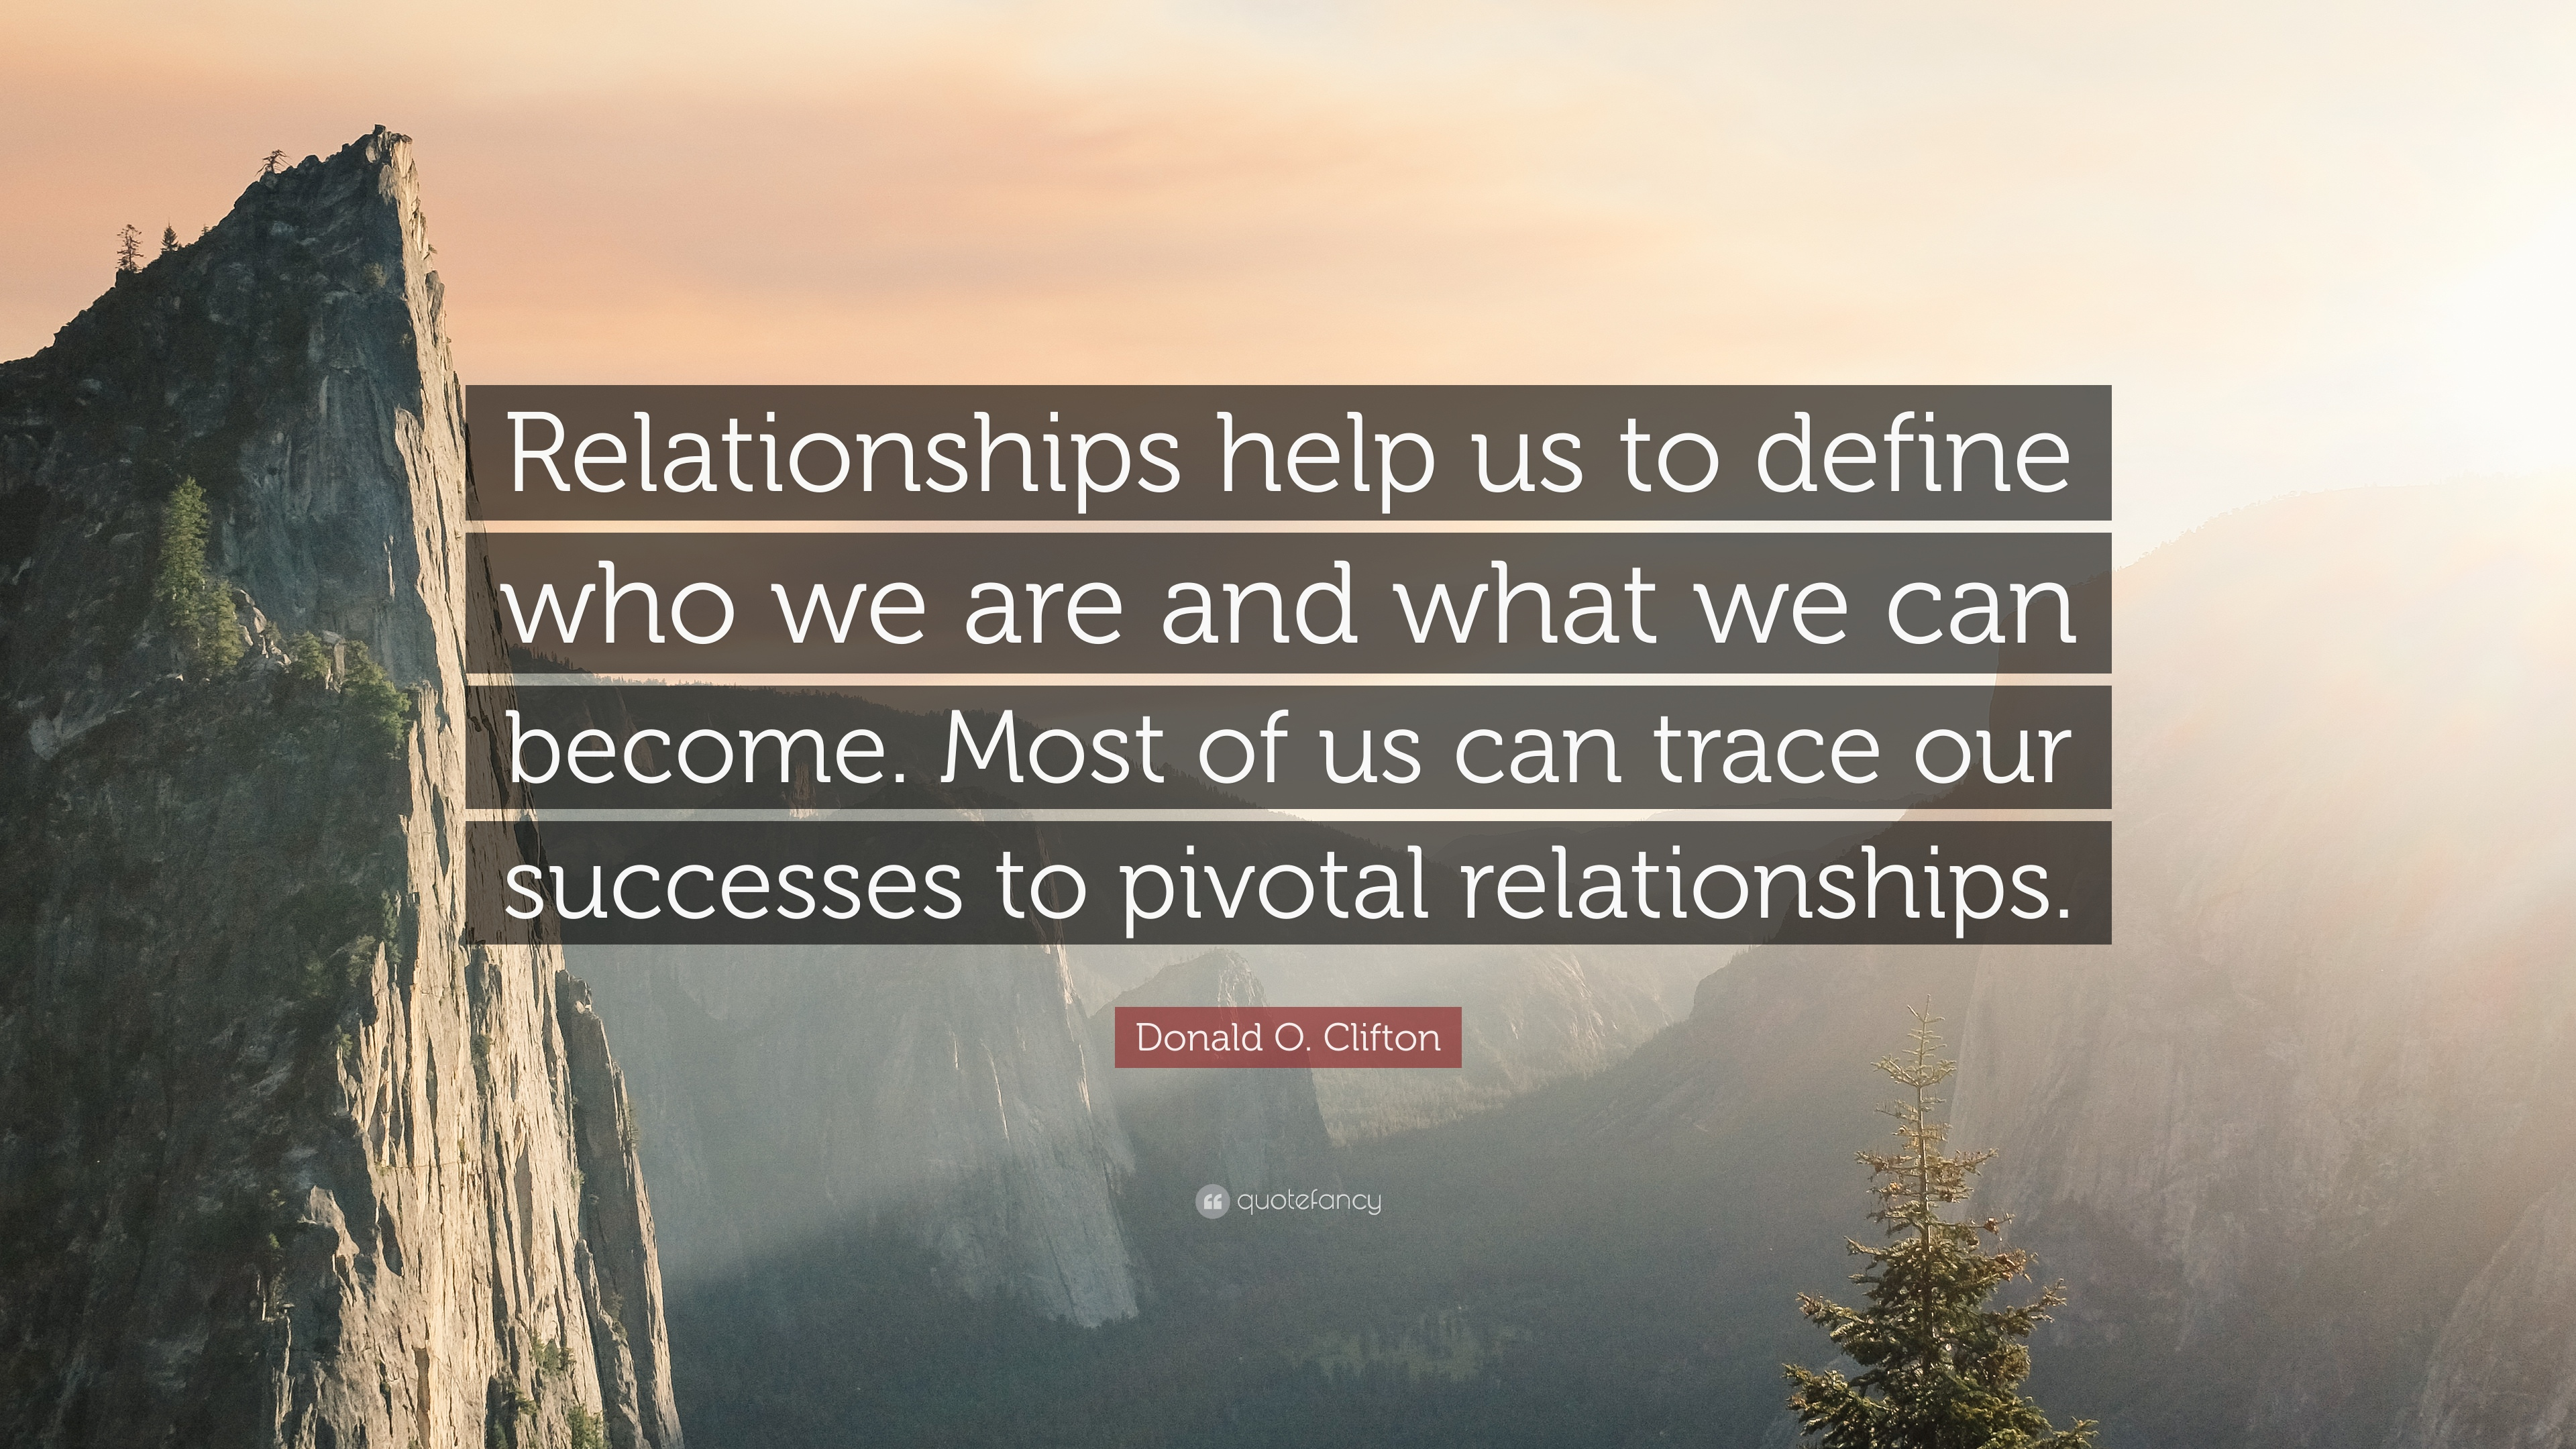 relationships define who we are essay There are innumerable points that you could write on relationships finding a captivating one is the challenge we could help you with a good relationship essay.